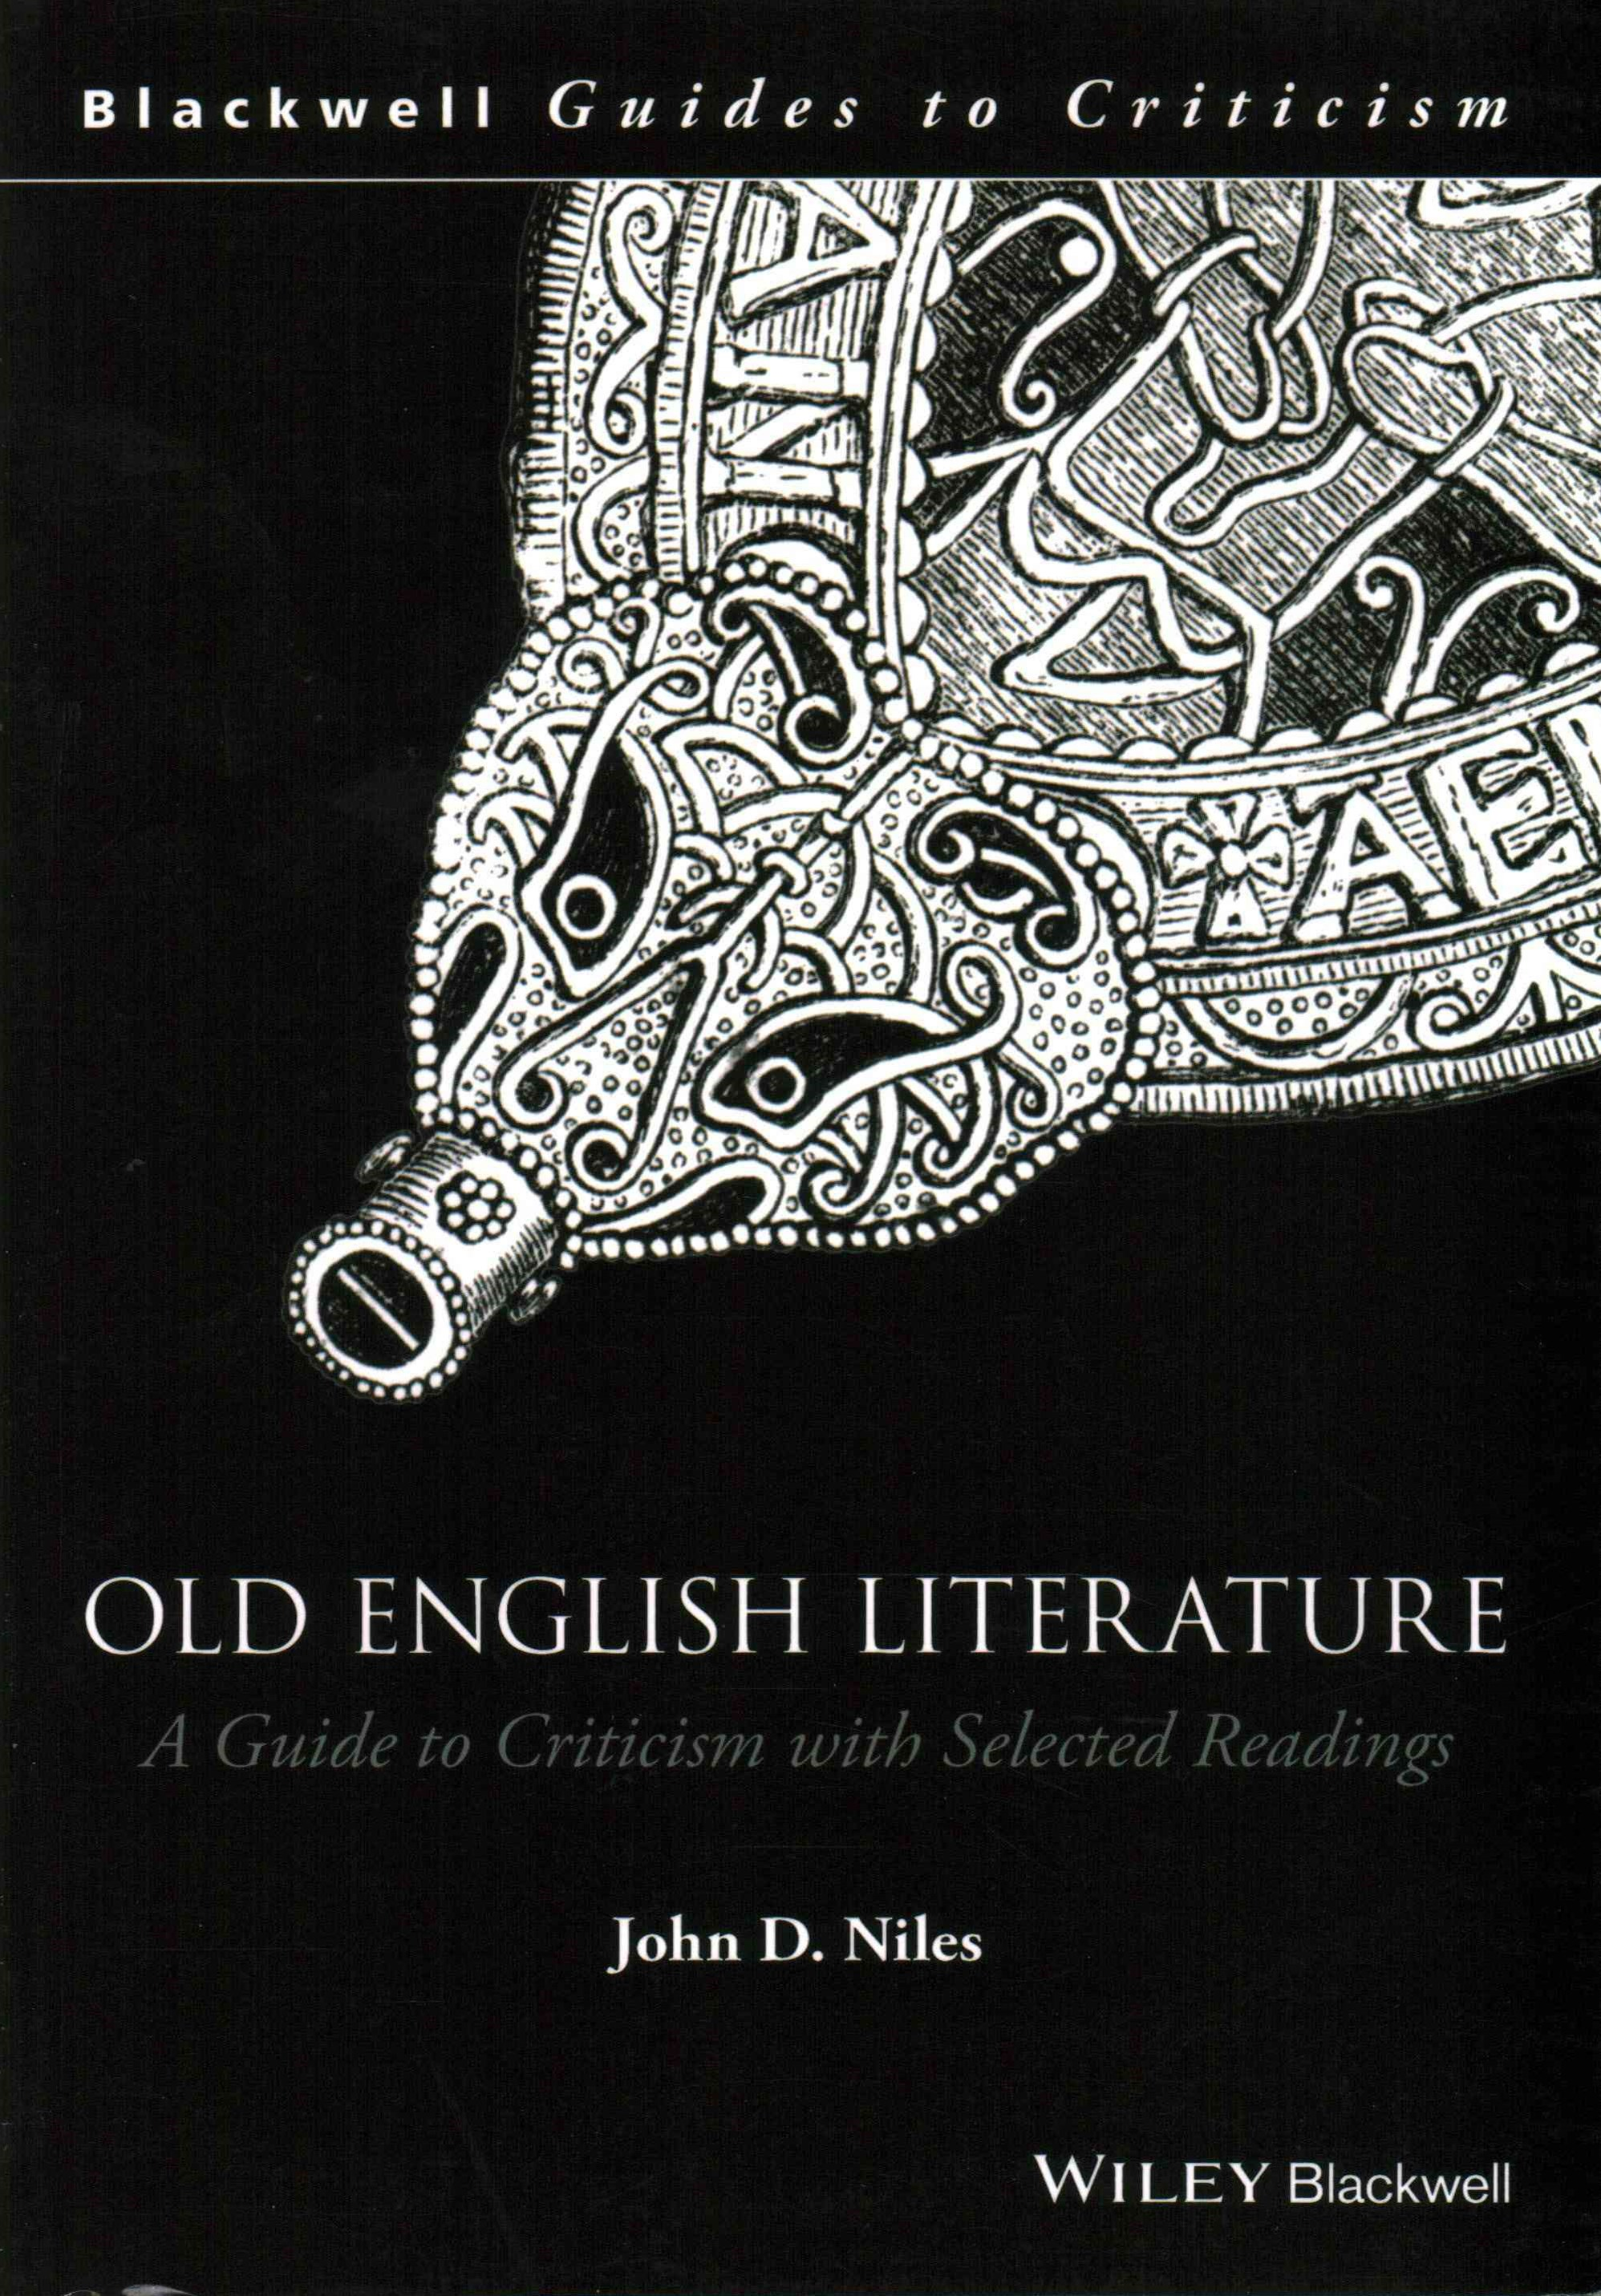 Old English Literature - a Guide to Criticism with Selected Readings